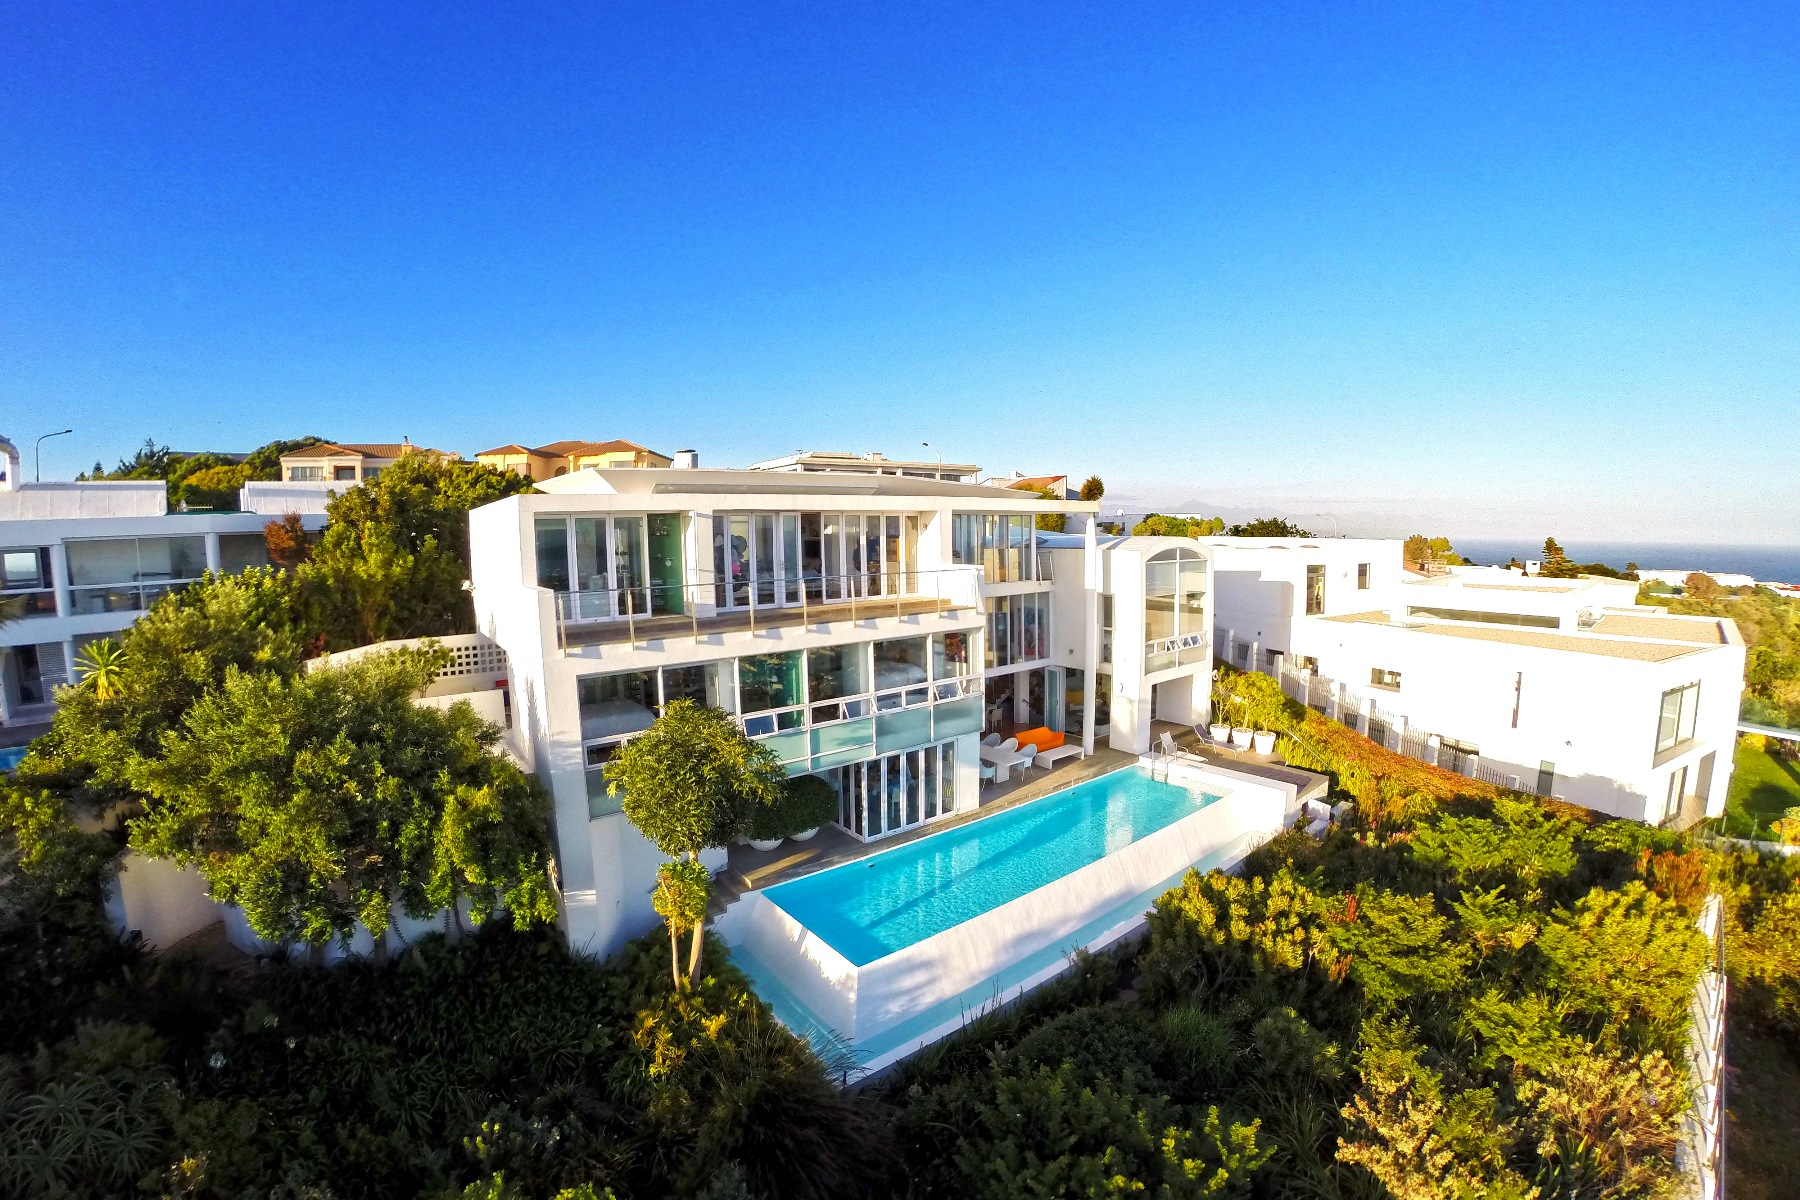 Maison unifamiliale pour l Vente à Excellent sea view home-architecturally designed Plettenberg Bay, Cap-Occidental, 6600 Afrique Du Sud